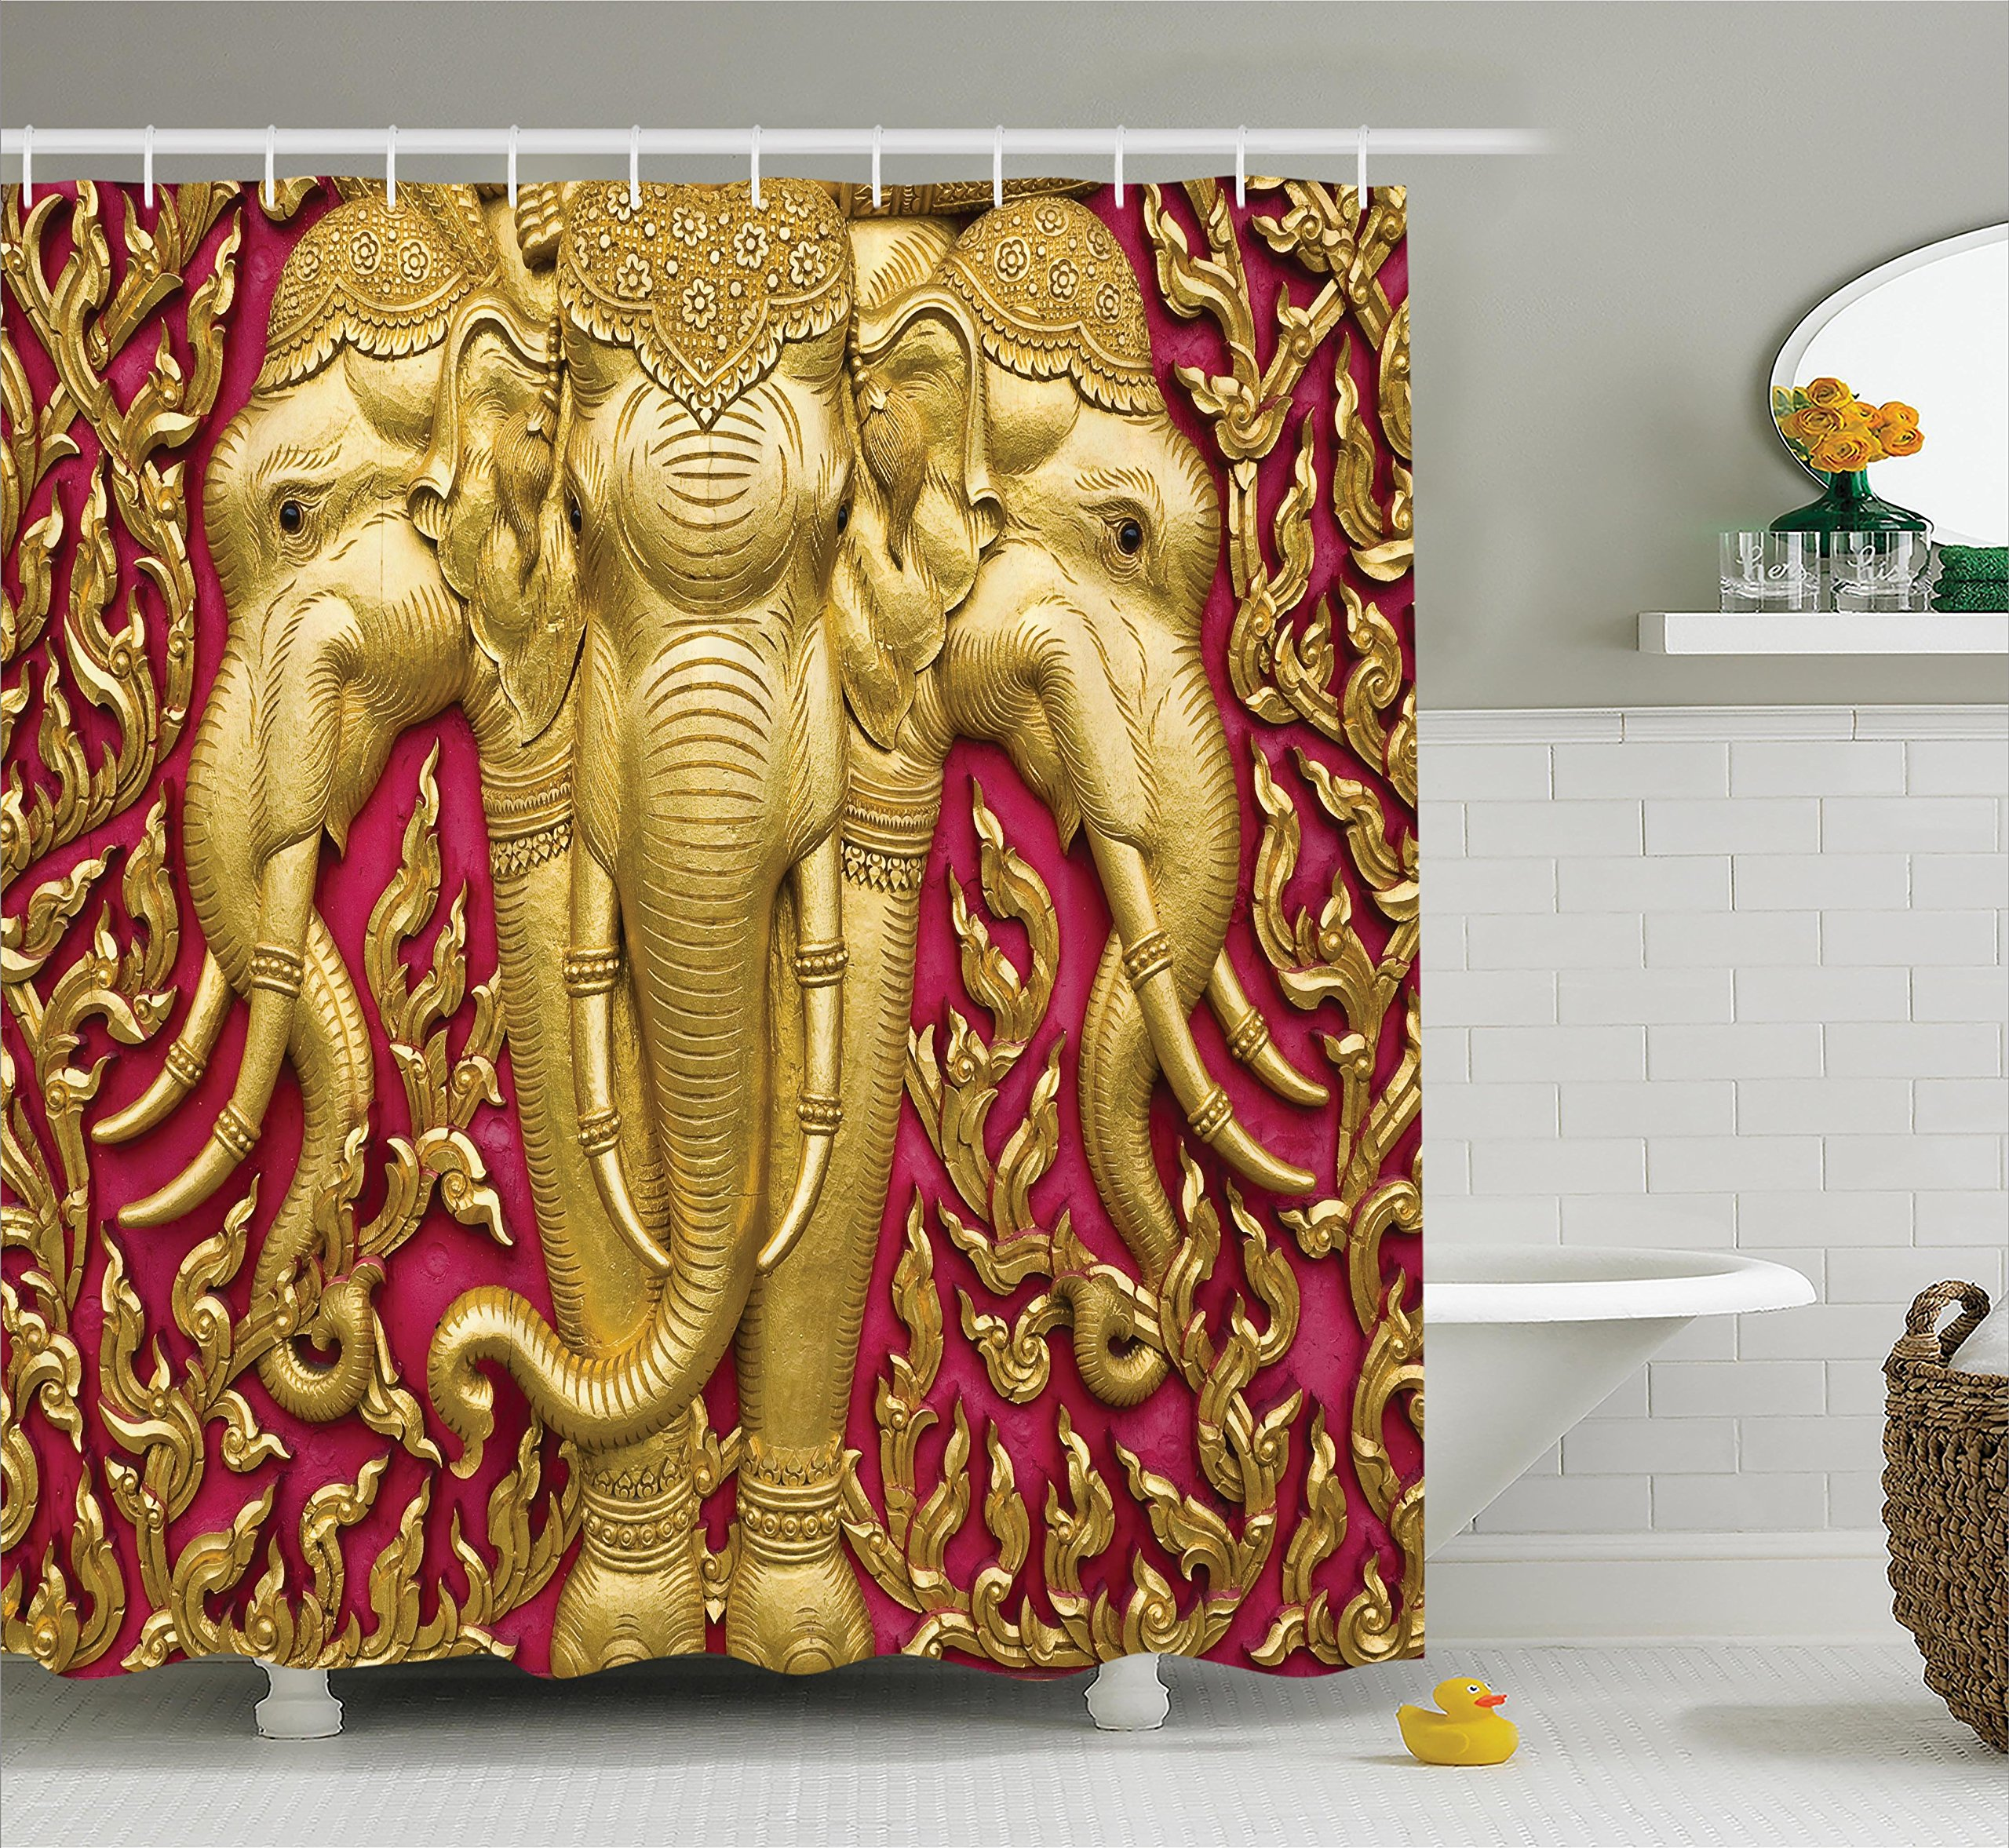 Ambesonne Elephant Shower Curtain, Yellow Toned Elephant Motif on Door Thai Temple Spirituality Statue Classic, Fabric Bathroom Decor Set with Hooks, 70 inches, Fuchsia Mustard by Ambesonne